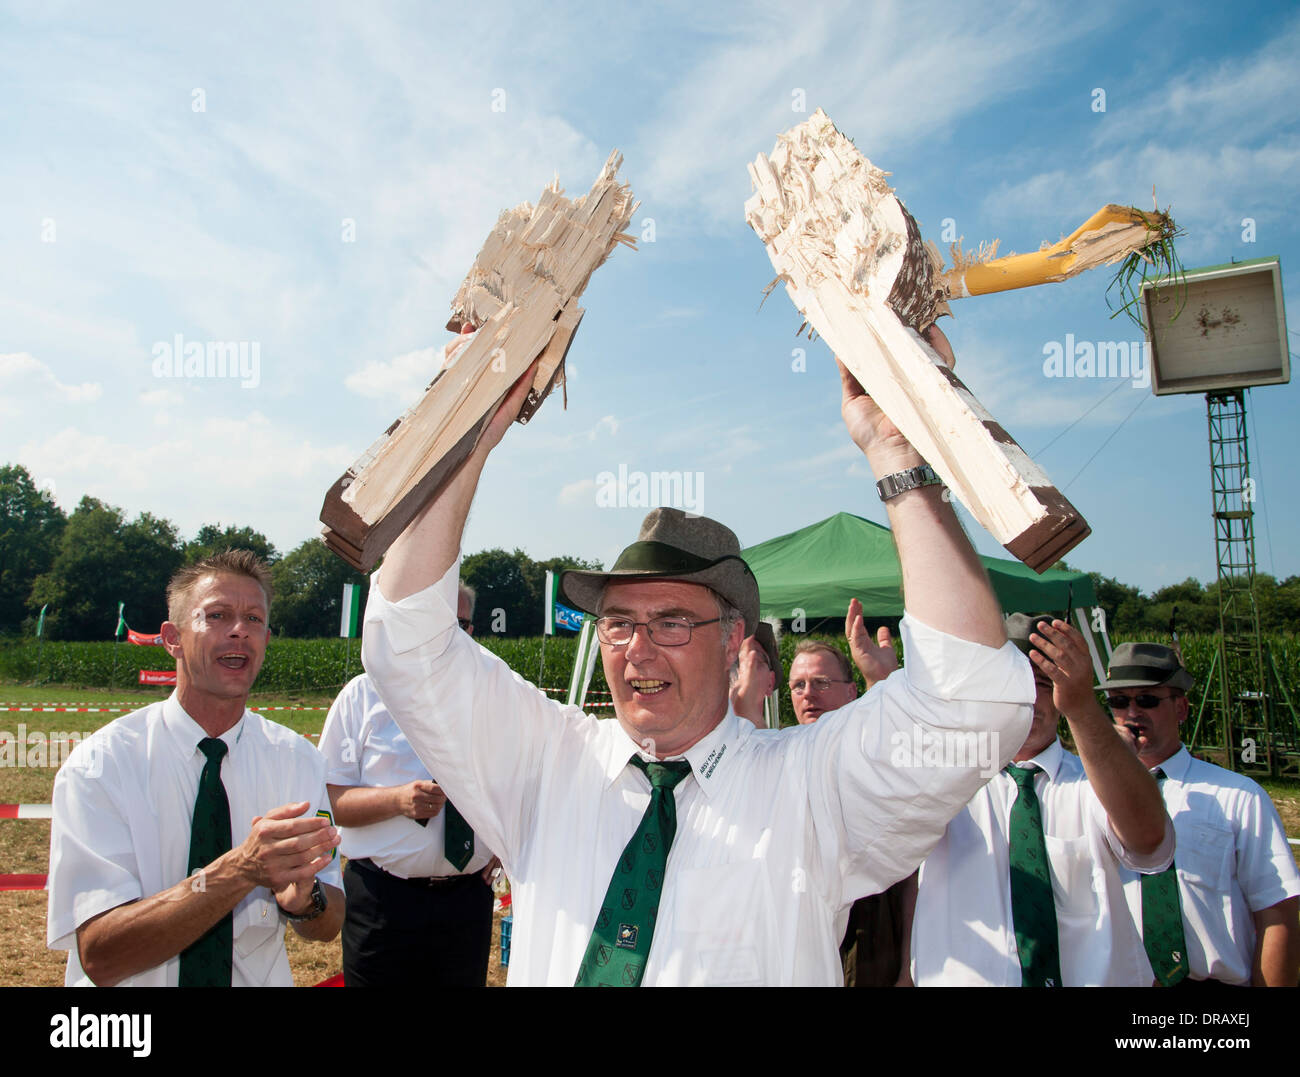 Shooters applaud their new shooters king, in the middle, who shot the wooden shooters bird down at the marksmen's festival. - Stock Image